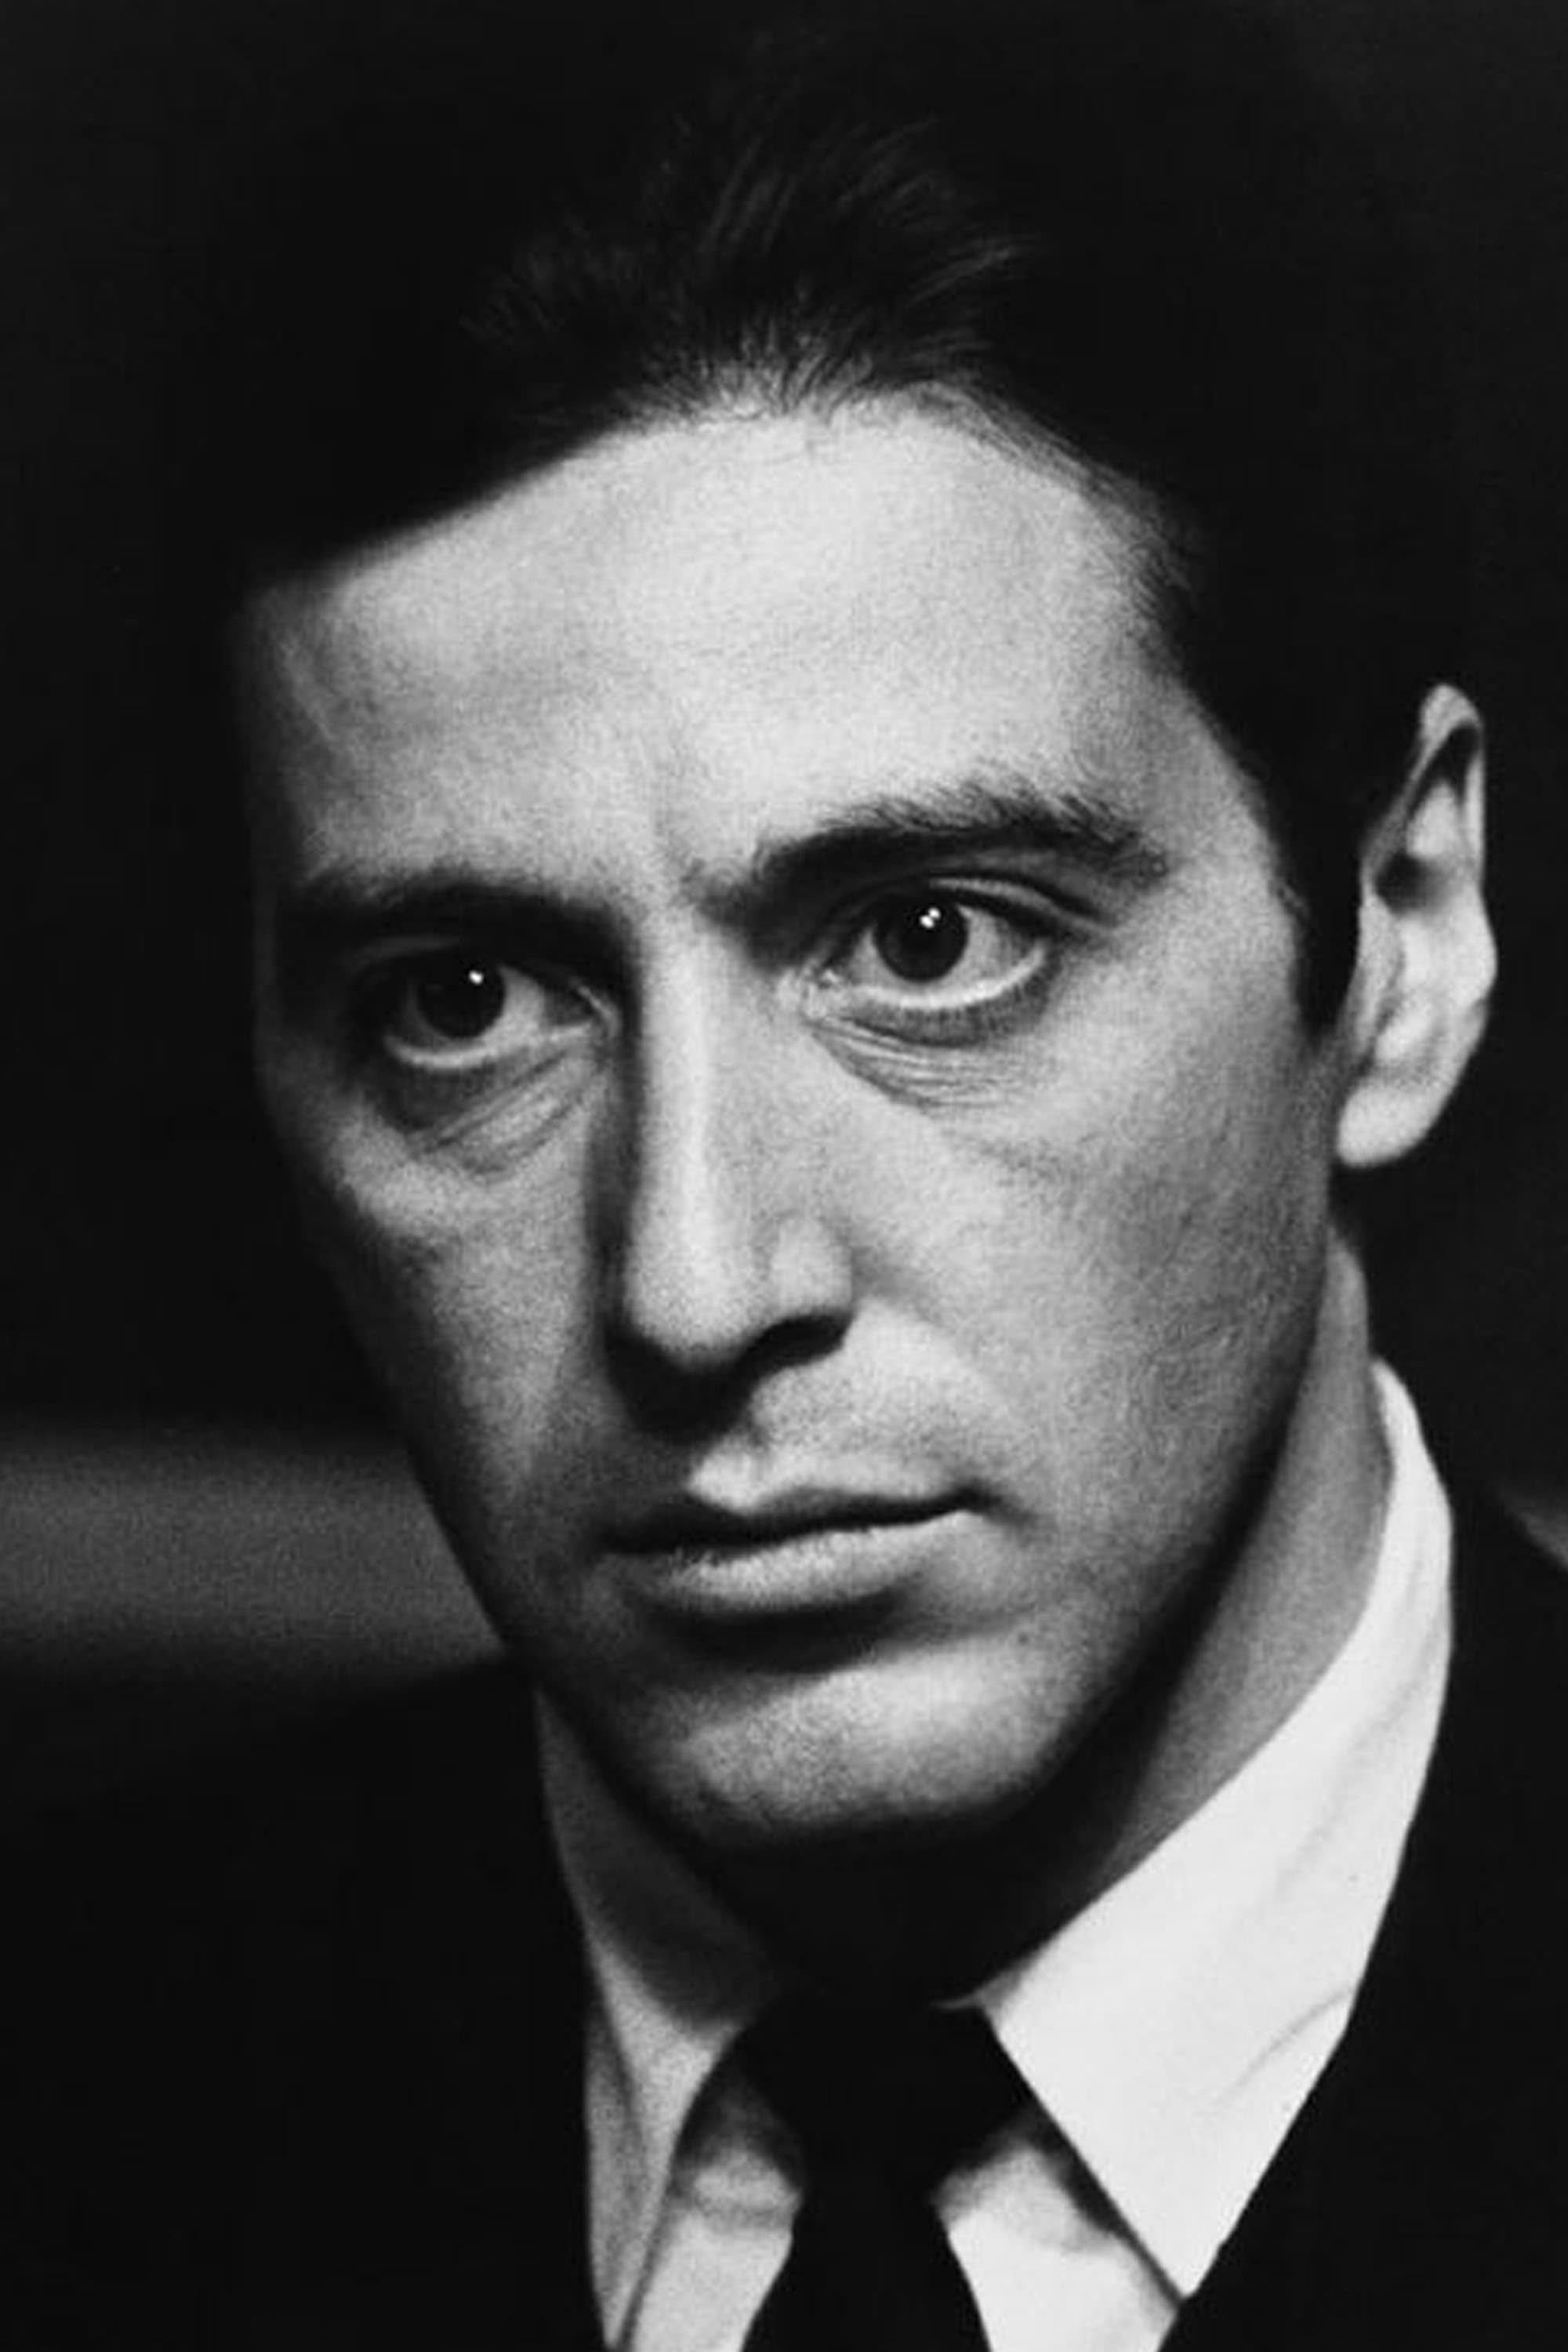 al pacino biography A new meryl streep biography titled her again by michael schulman provides a   al pacino is quoted on meryl streep's devotion to cazale.